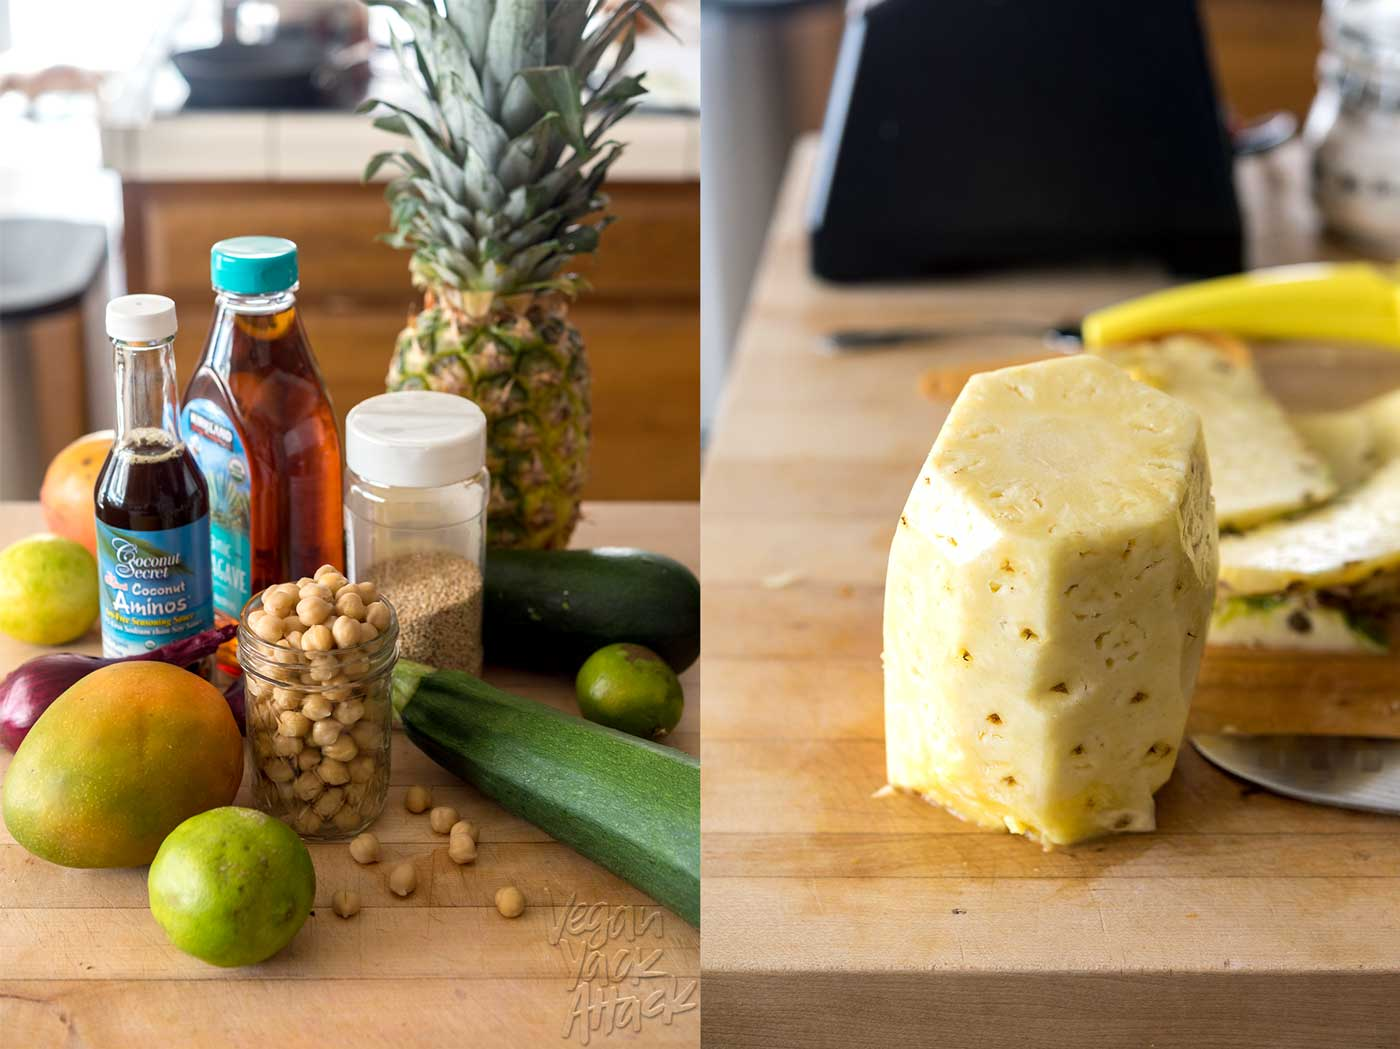 image collage of fresh ingredients, chickpeas, seeds, and pineapple